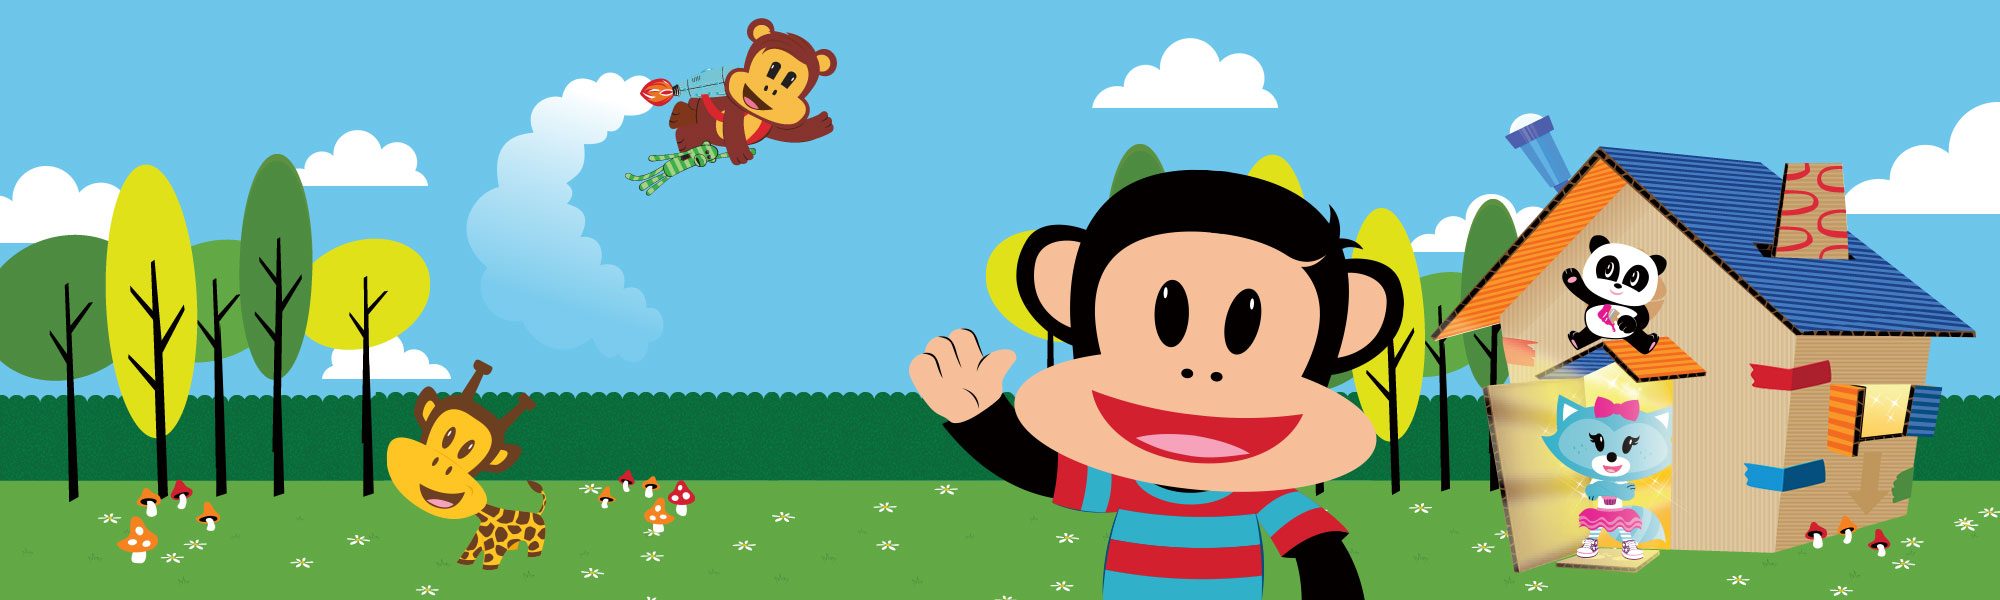 Julius Jr.'s Playhouse kids' app by StoryToys